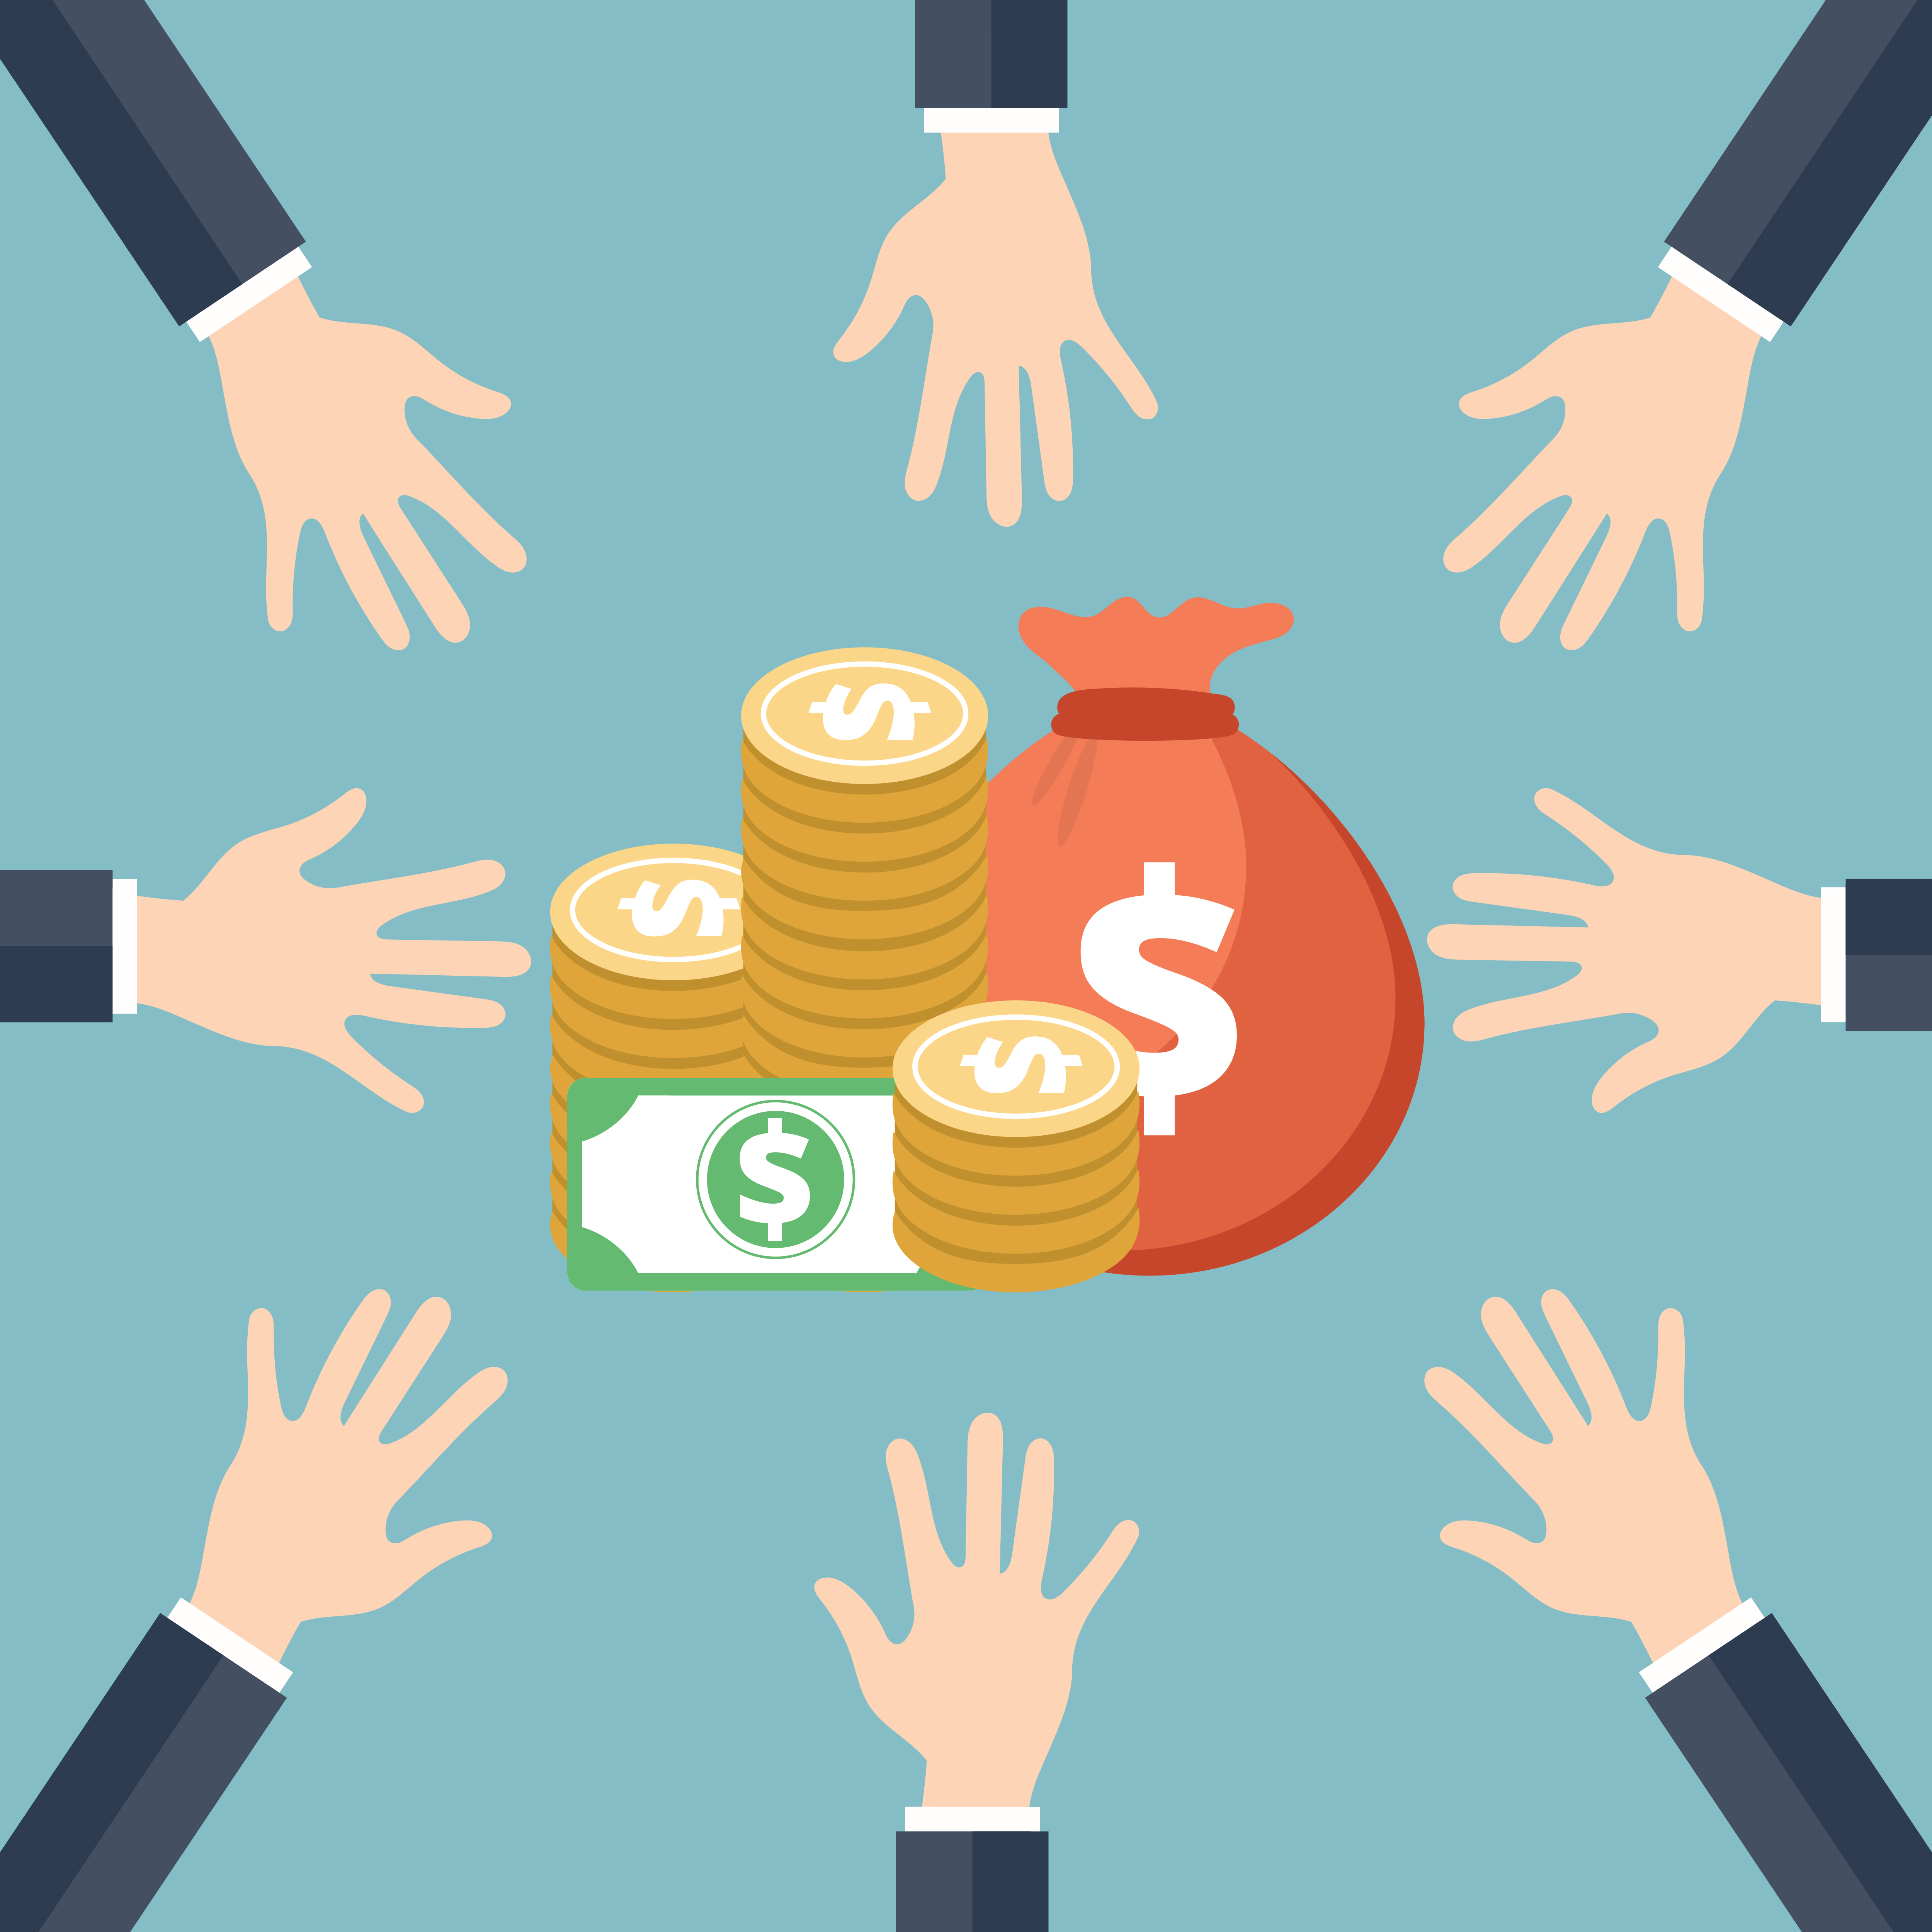 Investment Concept. Hands Reaching For Money